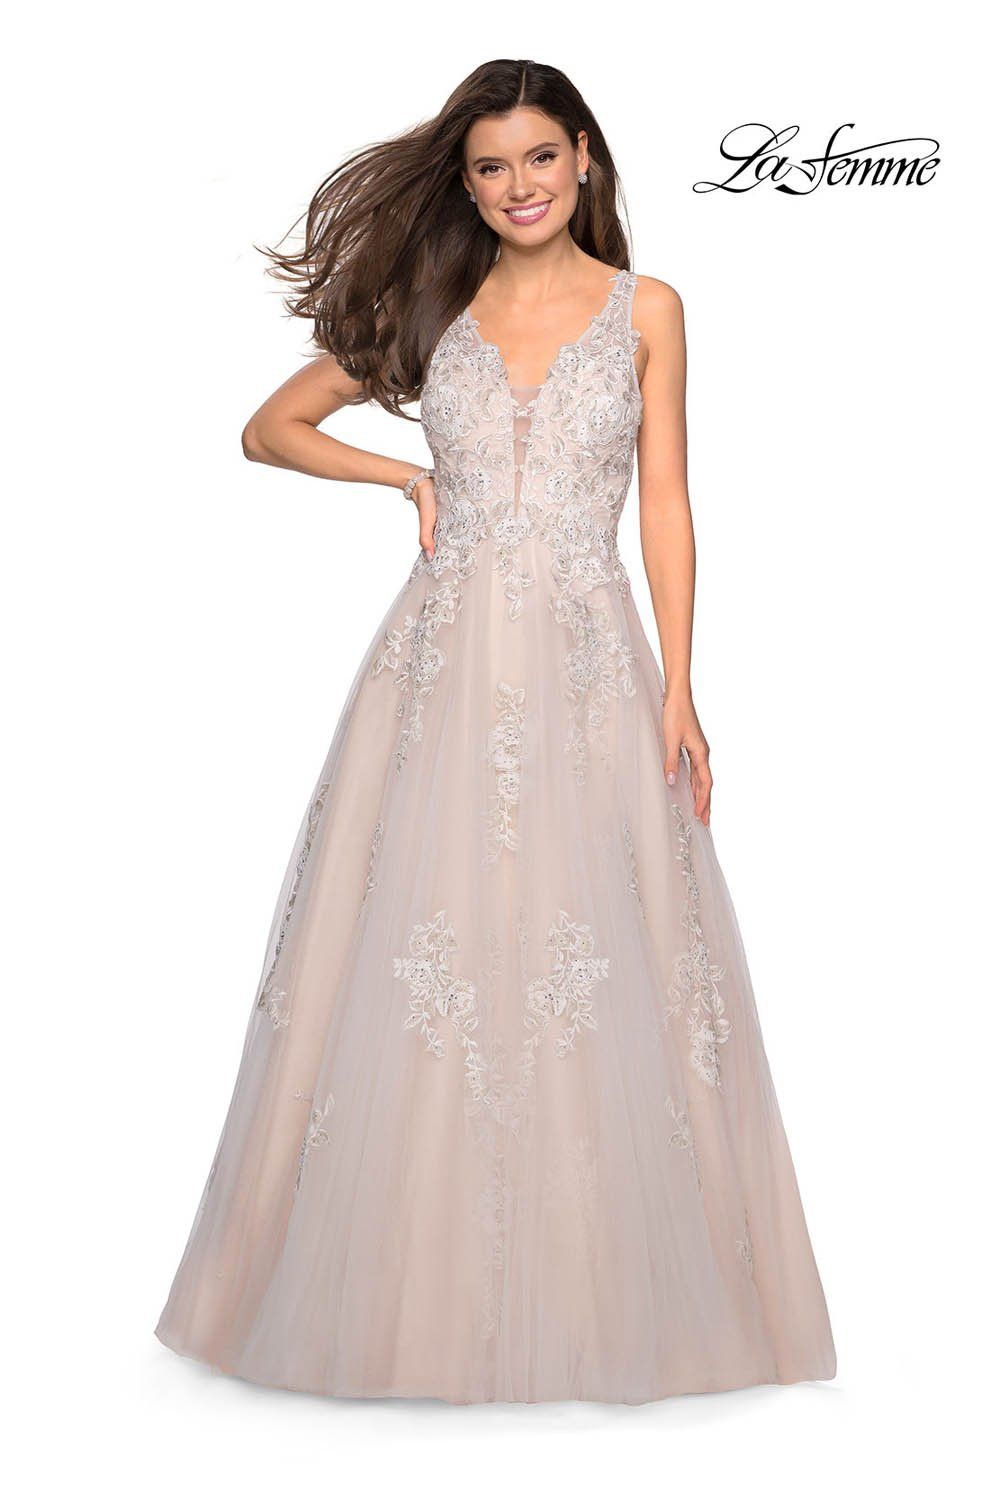 Gigi by La Femme 27727 prom dress images.  Gigi by La Femme 27727 is available in these colors: Ivory Nude, Periwinkle.